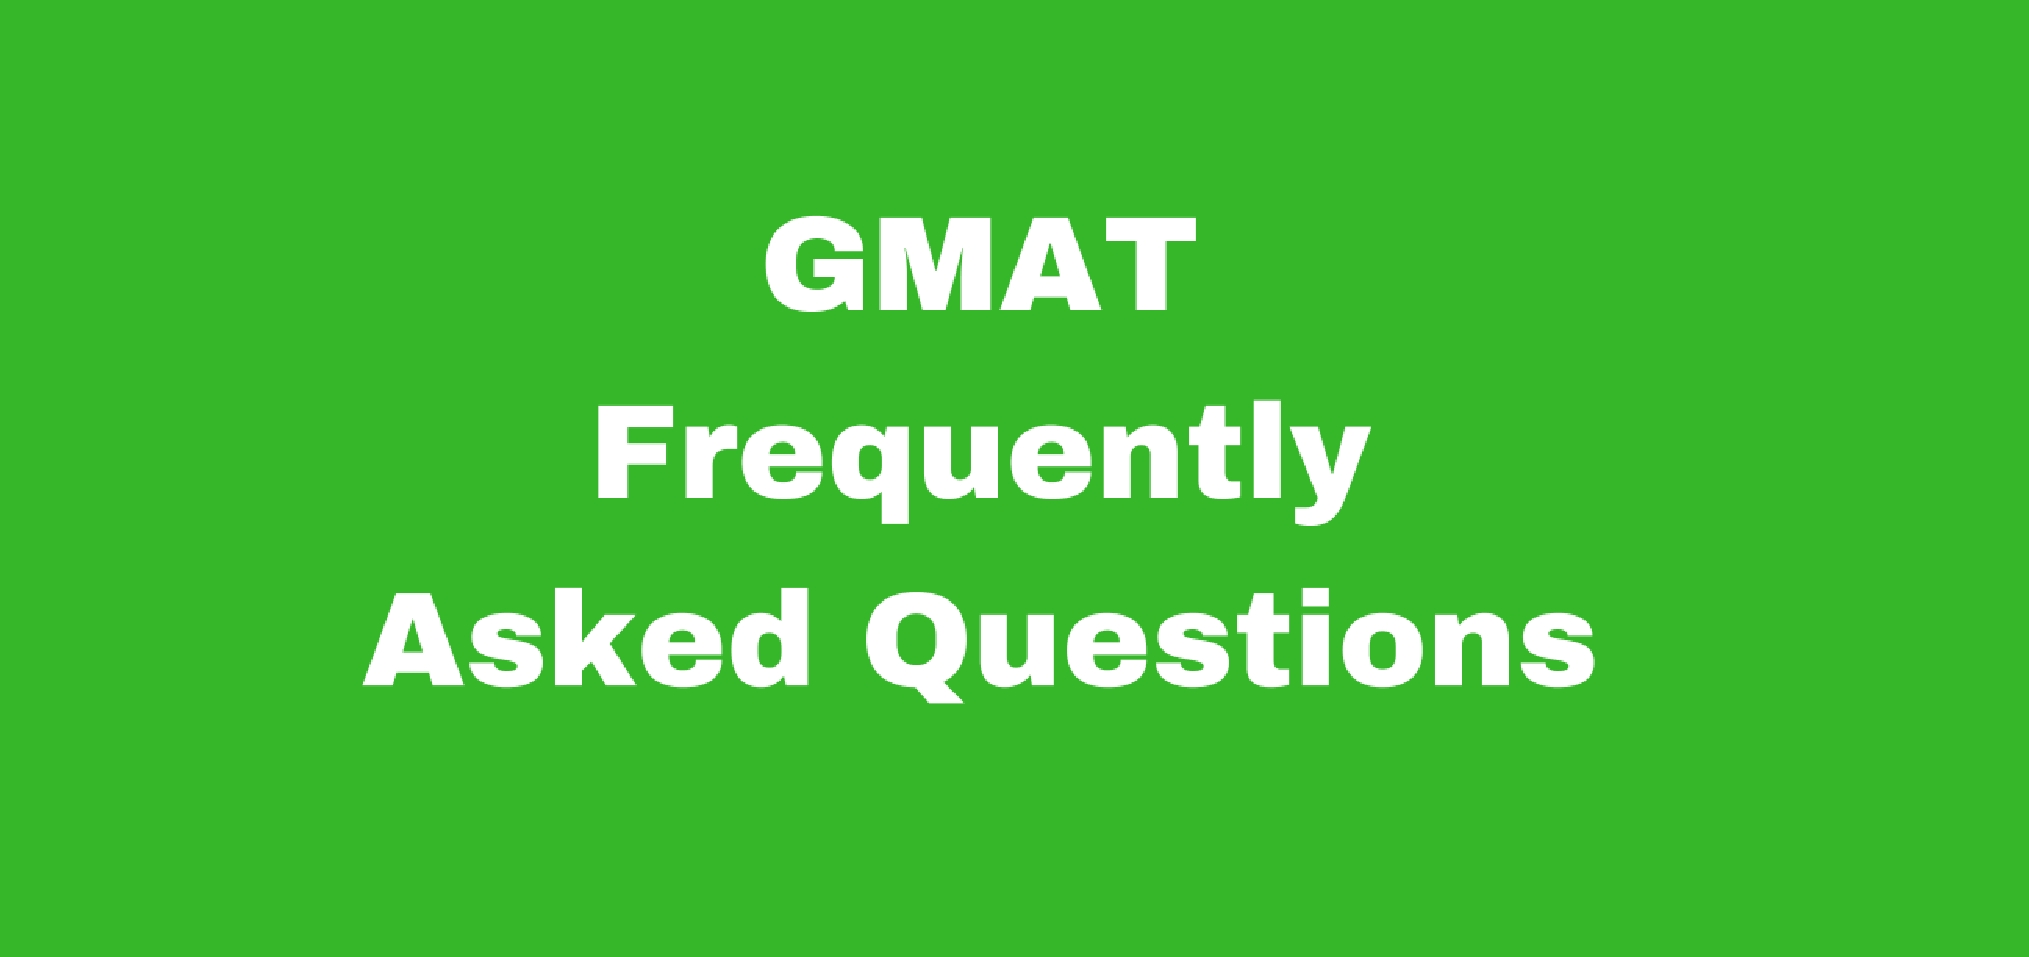 gmat Manhattan prep offers a variety of industry-leading online and in-person gmat prep options including classes, books, free resources, and private tutoring.